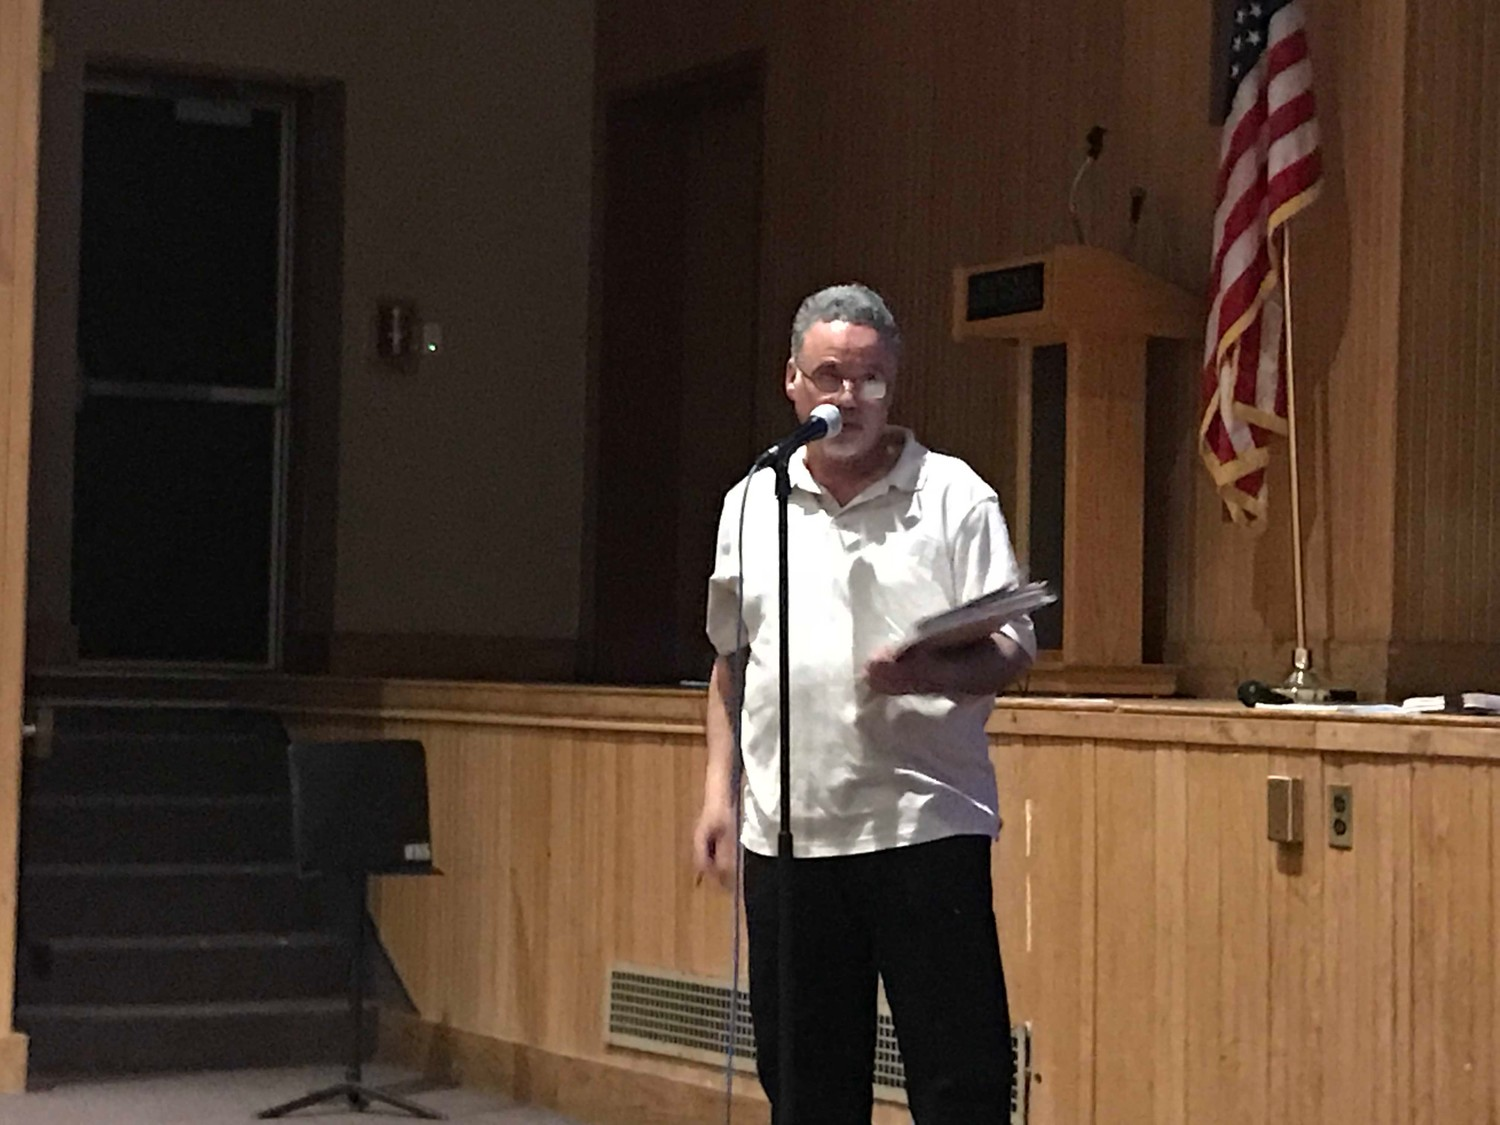 Phillip Franco, of Seaford Harbor, the co-chair of the Cedar Creek Oversight Committee, was one of several residents who spoke about the plan, and voiced his concerns over Cedar Creek being able to handle double its usual effluent load.